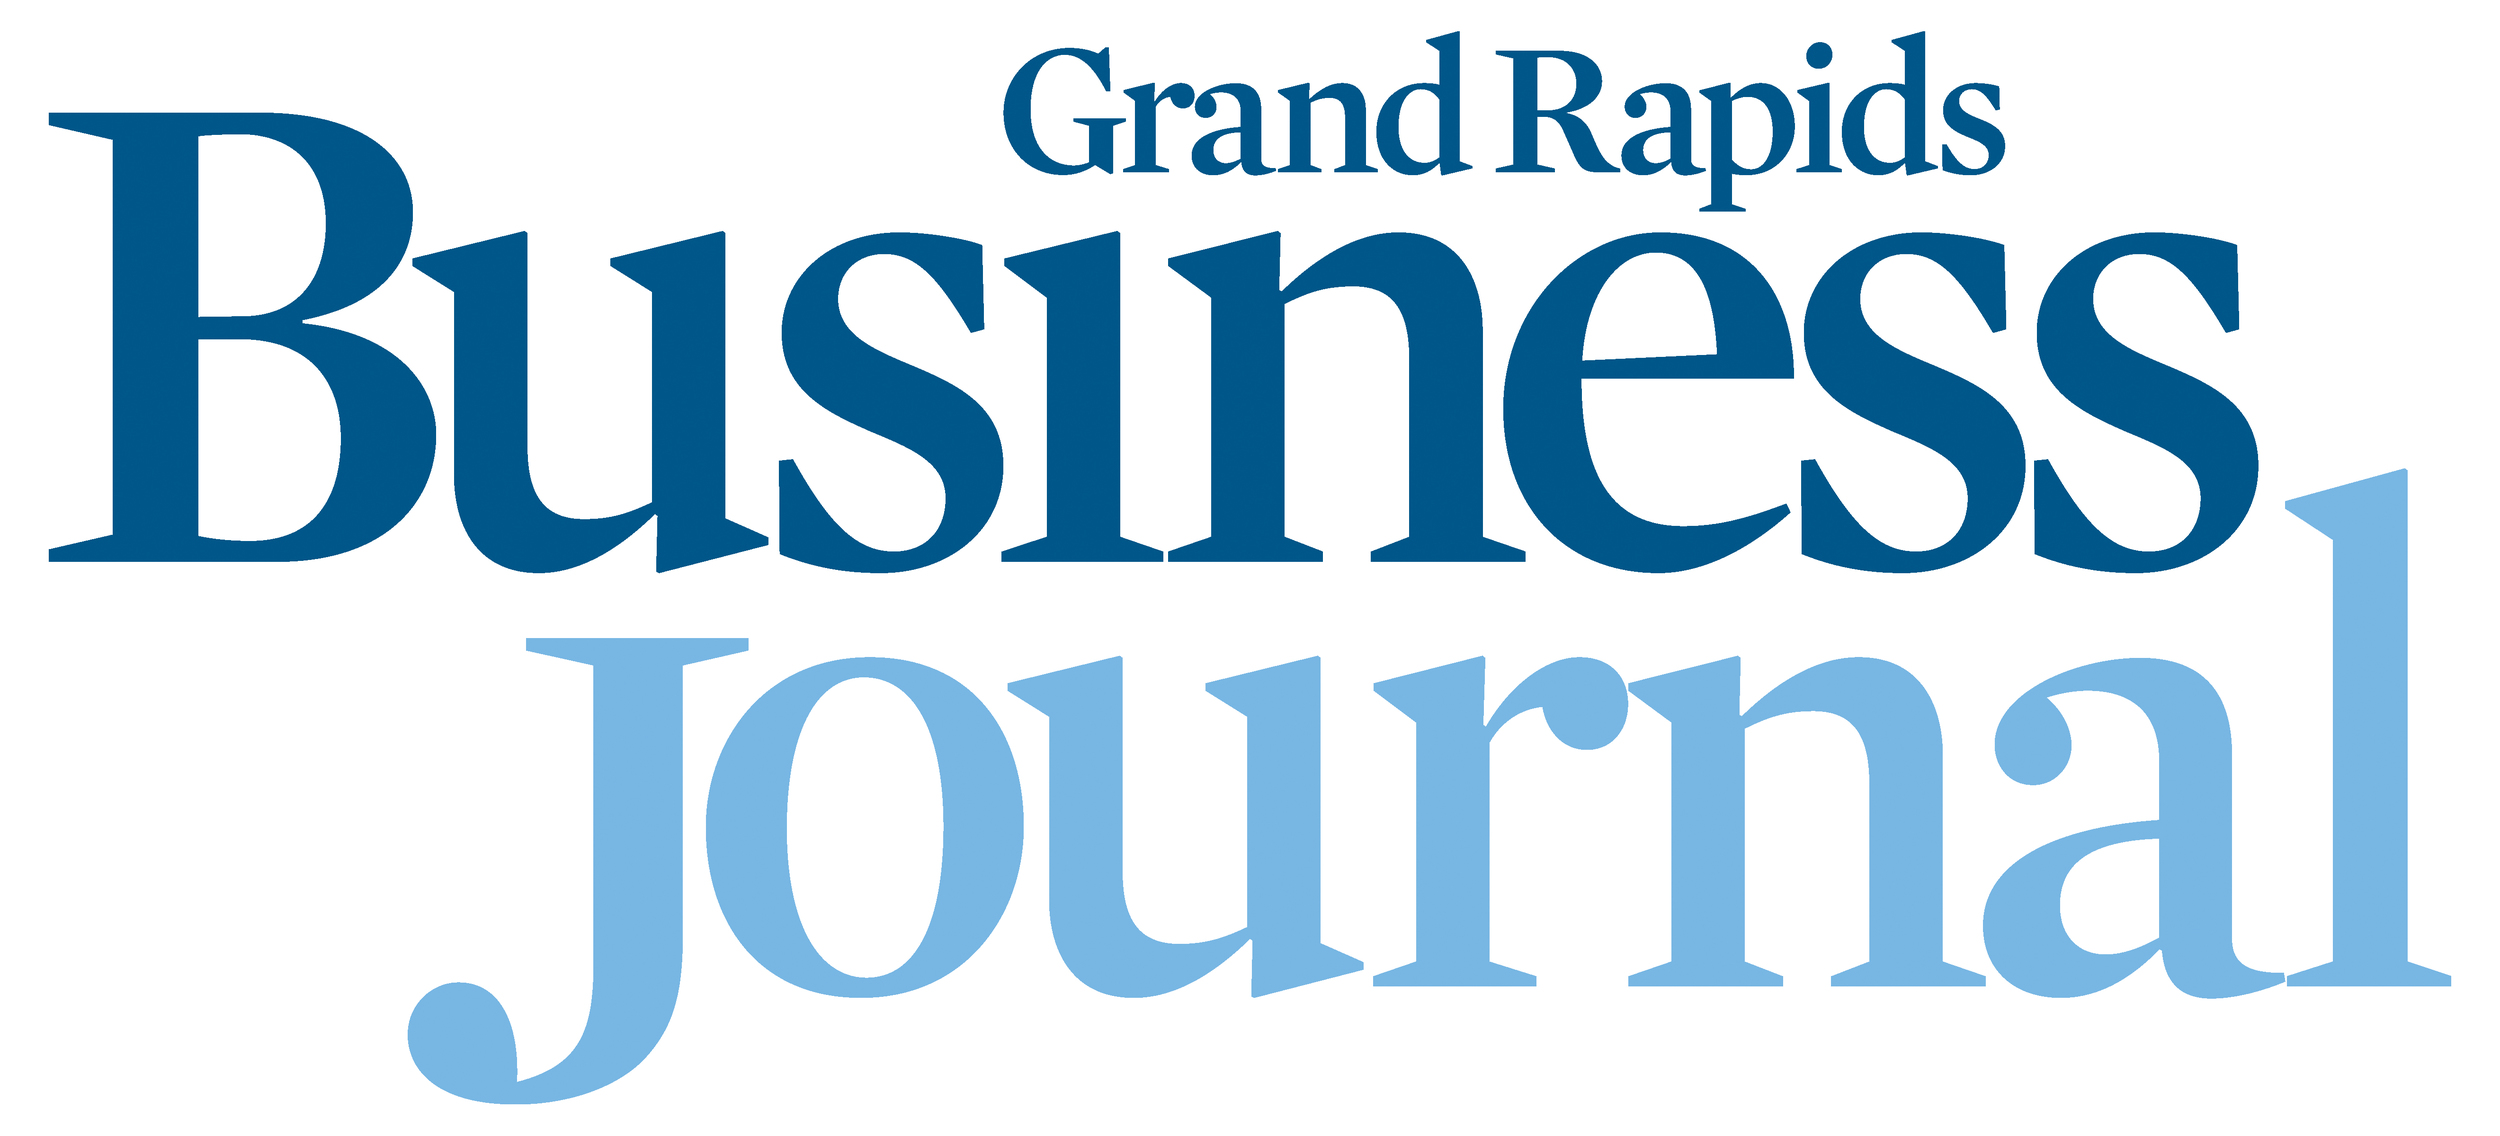 GrandPR offers students real-world experience: GVSU program is one of only a few with national accreditation